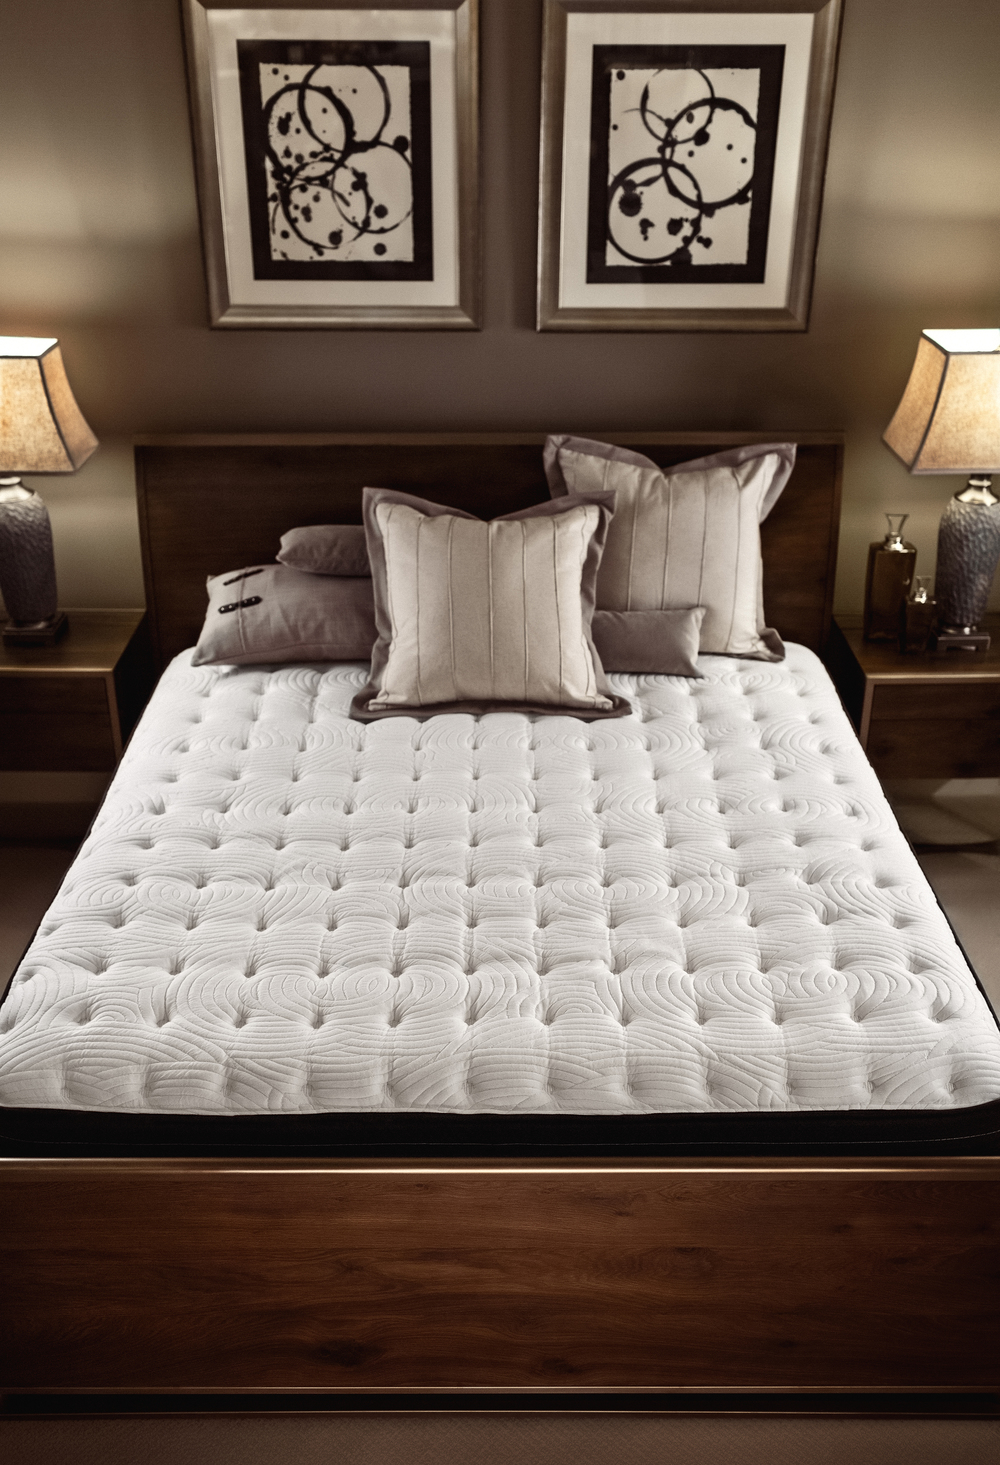 Larrabees_Select_Mattress (5)